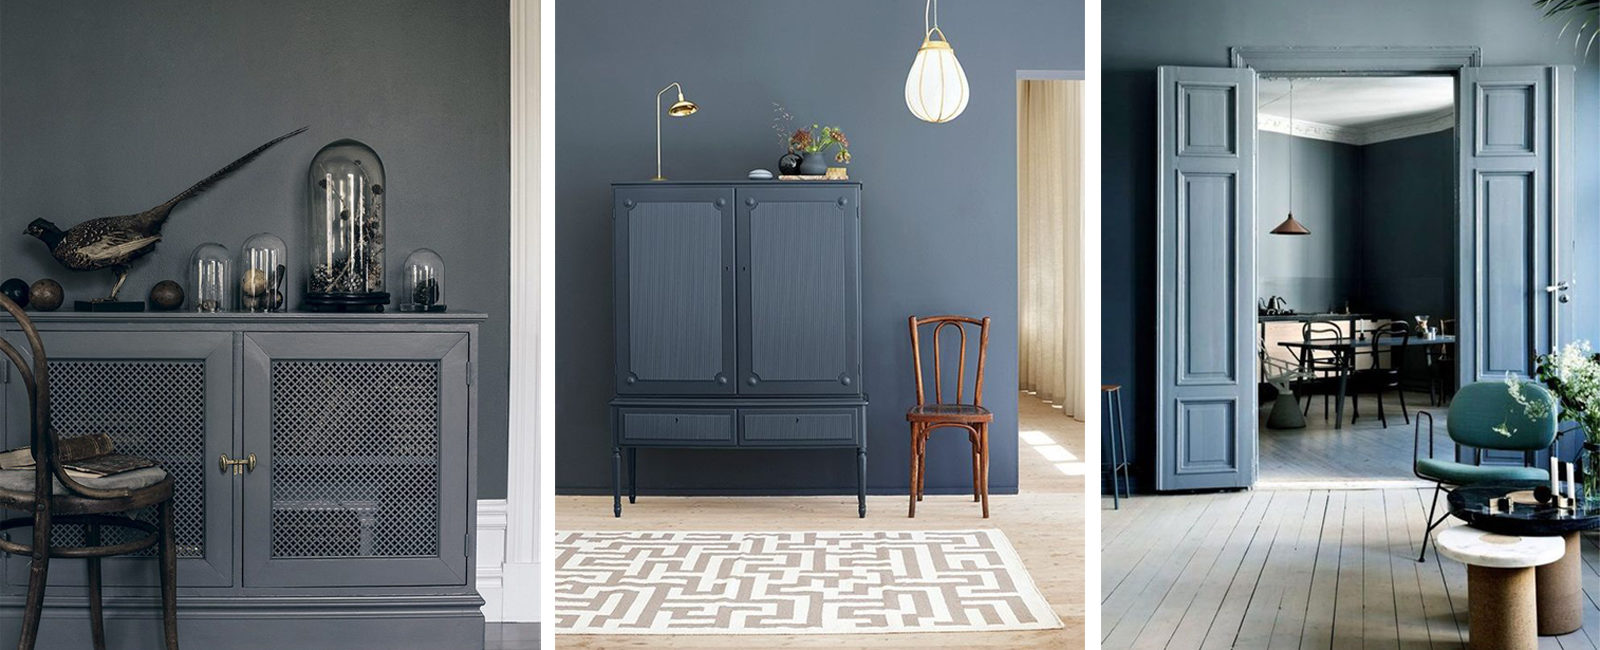 Trend: walls and furniture of the same color